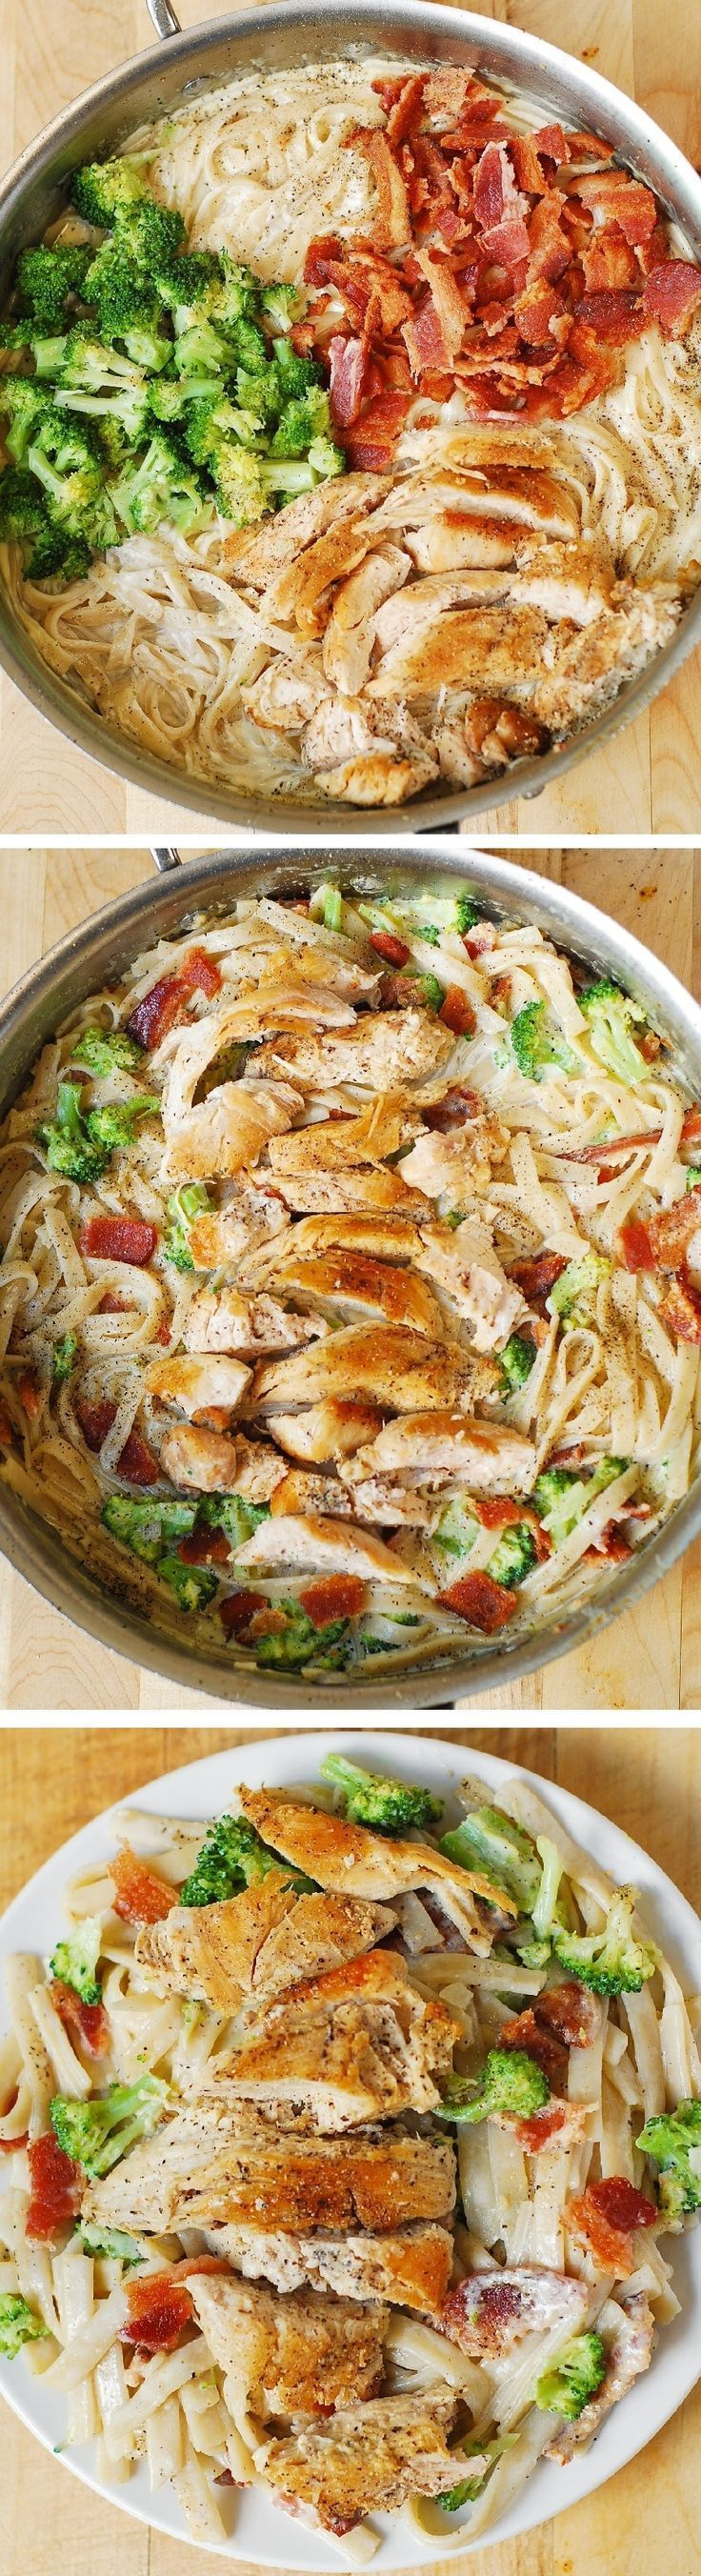 Creamy Broccoli, Chicken Breast, and Bacon Fettucc…